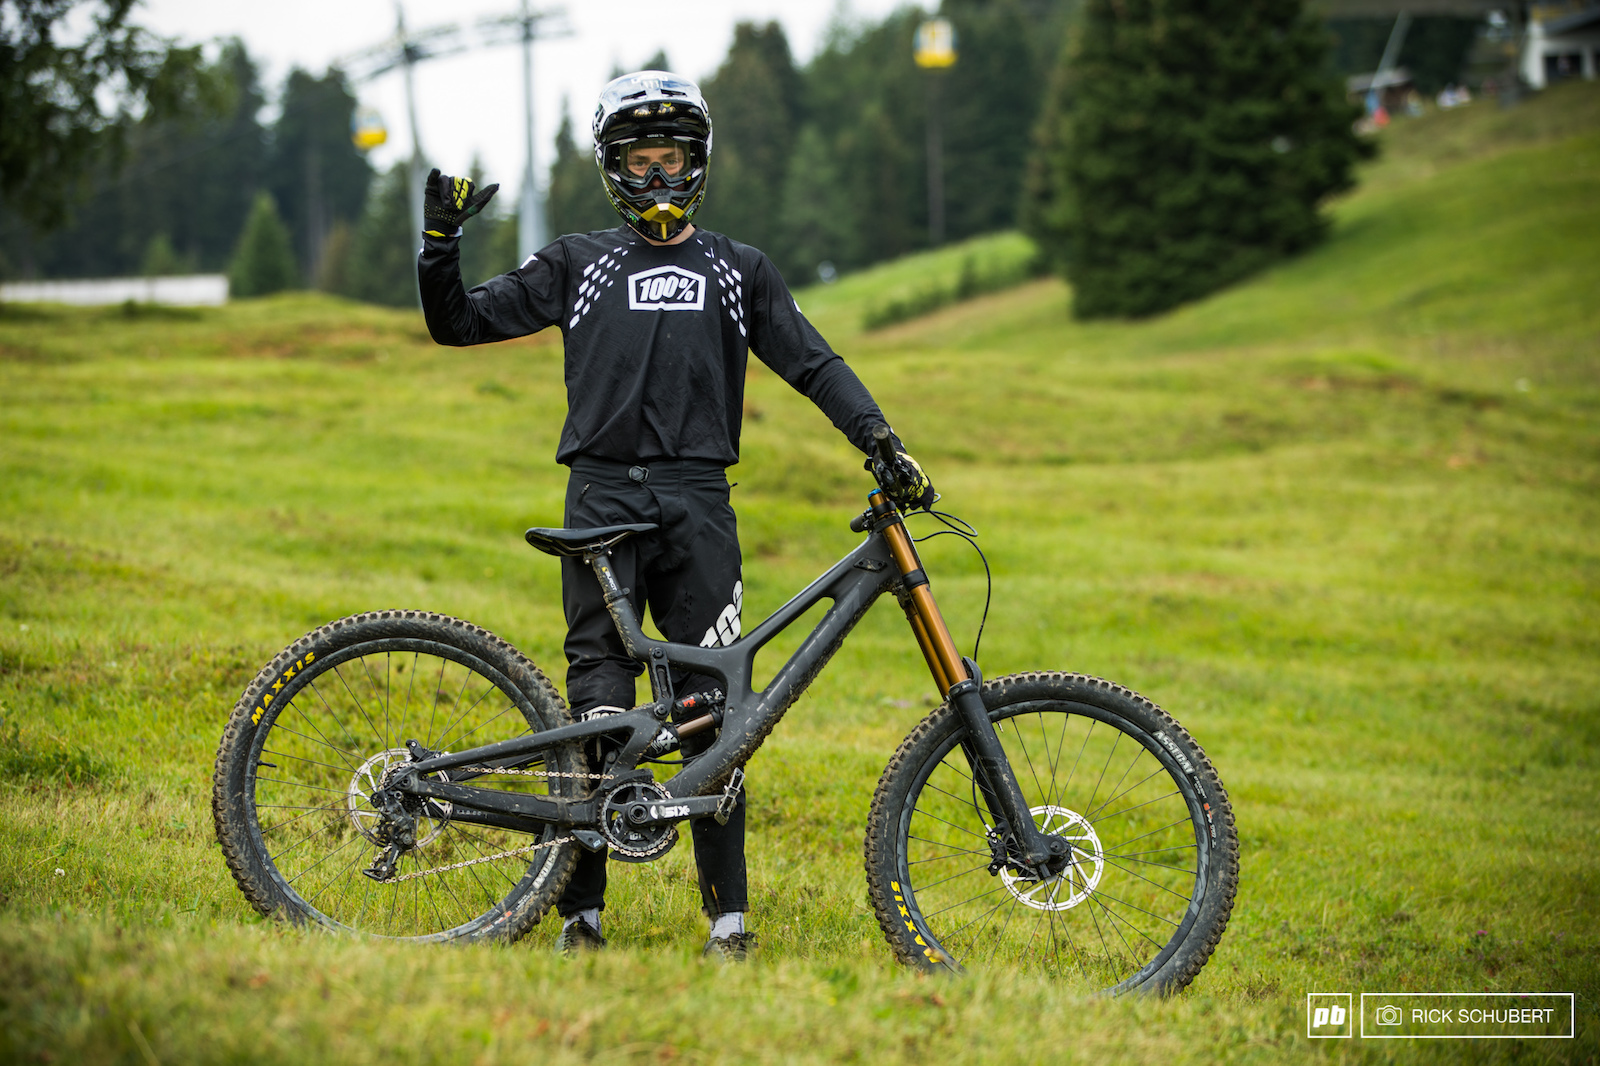 Ike Klaassen rips and is already hitting Fest Series jumps with 15 years to his age